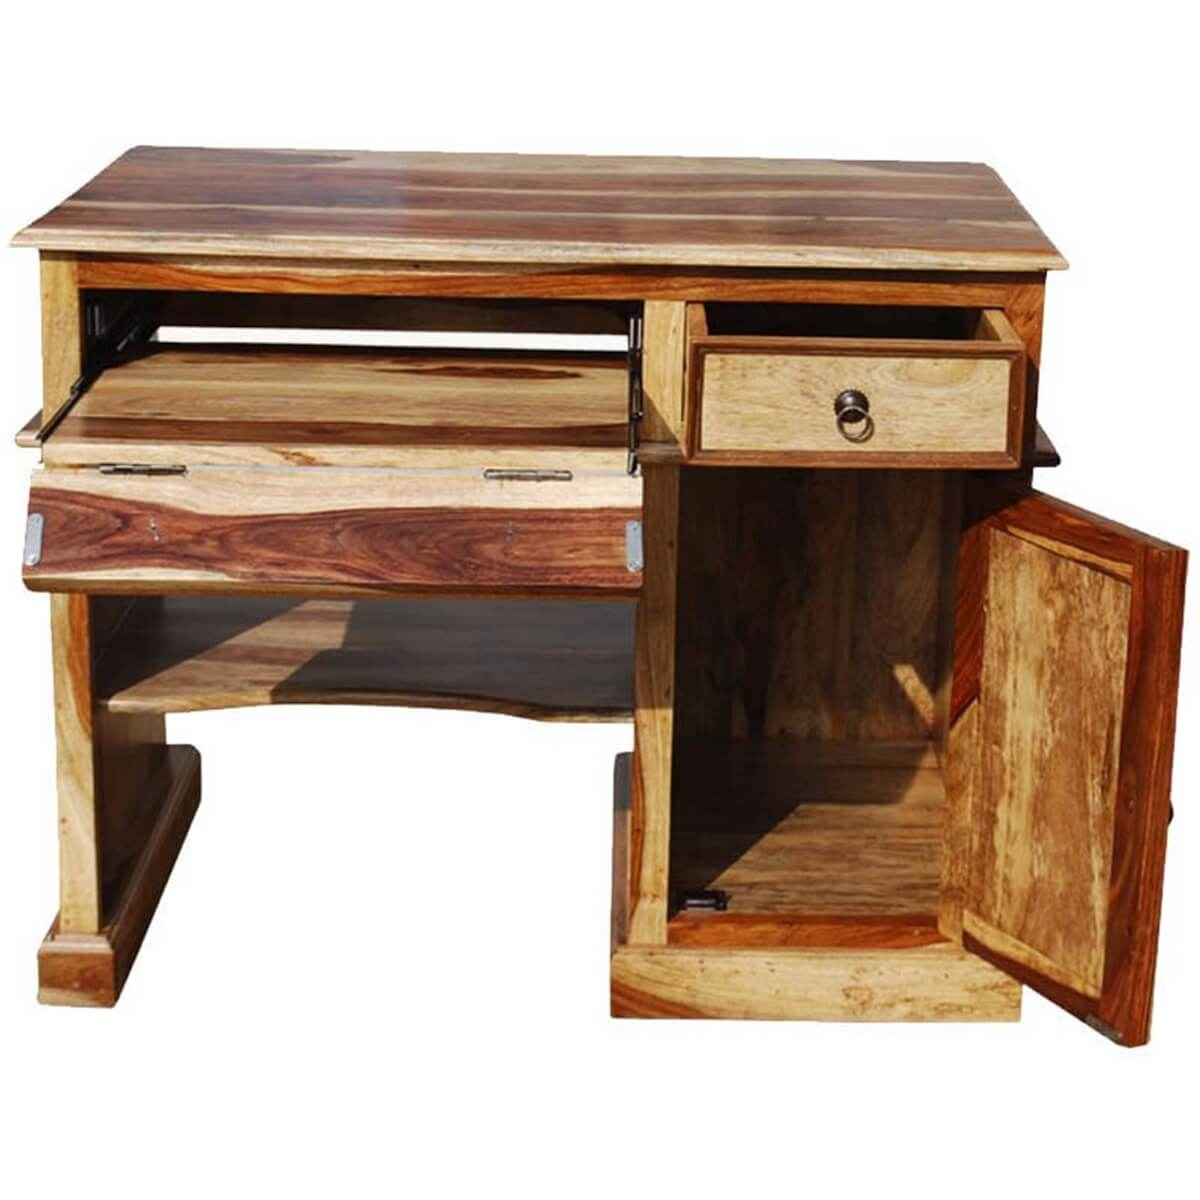 ... Santa Fe Collection Solid Wood Computer Desk For Small Space